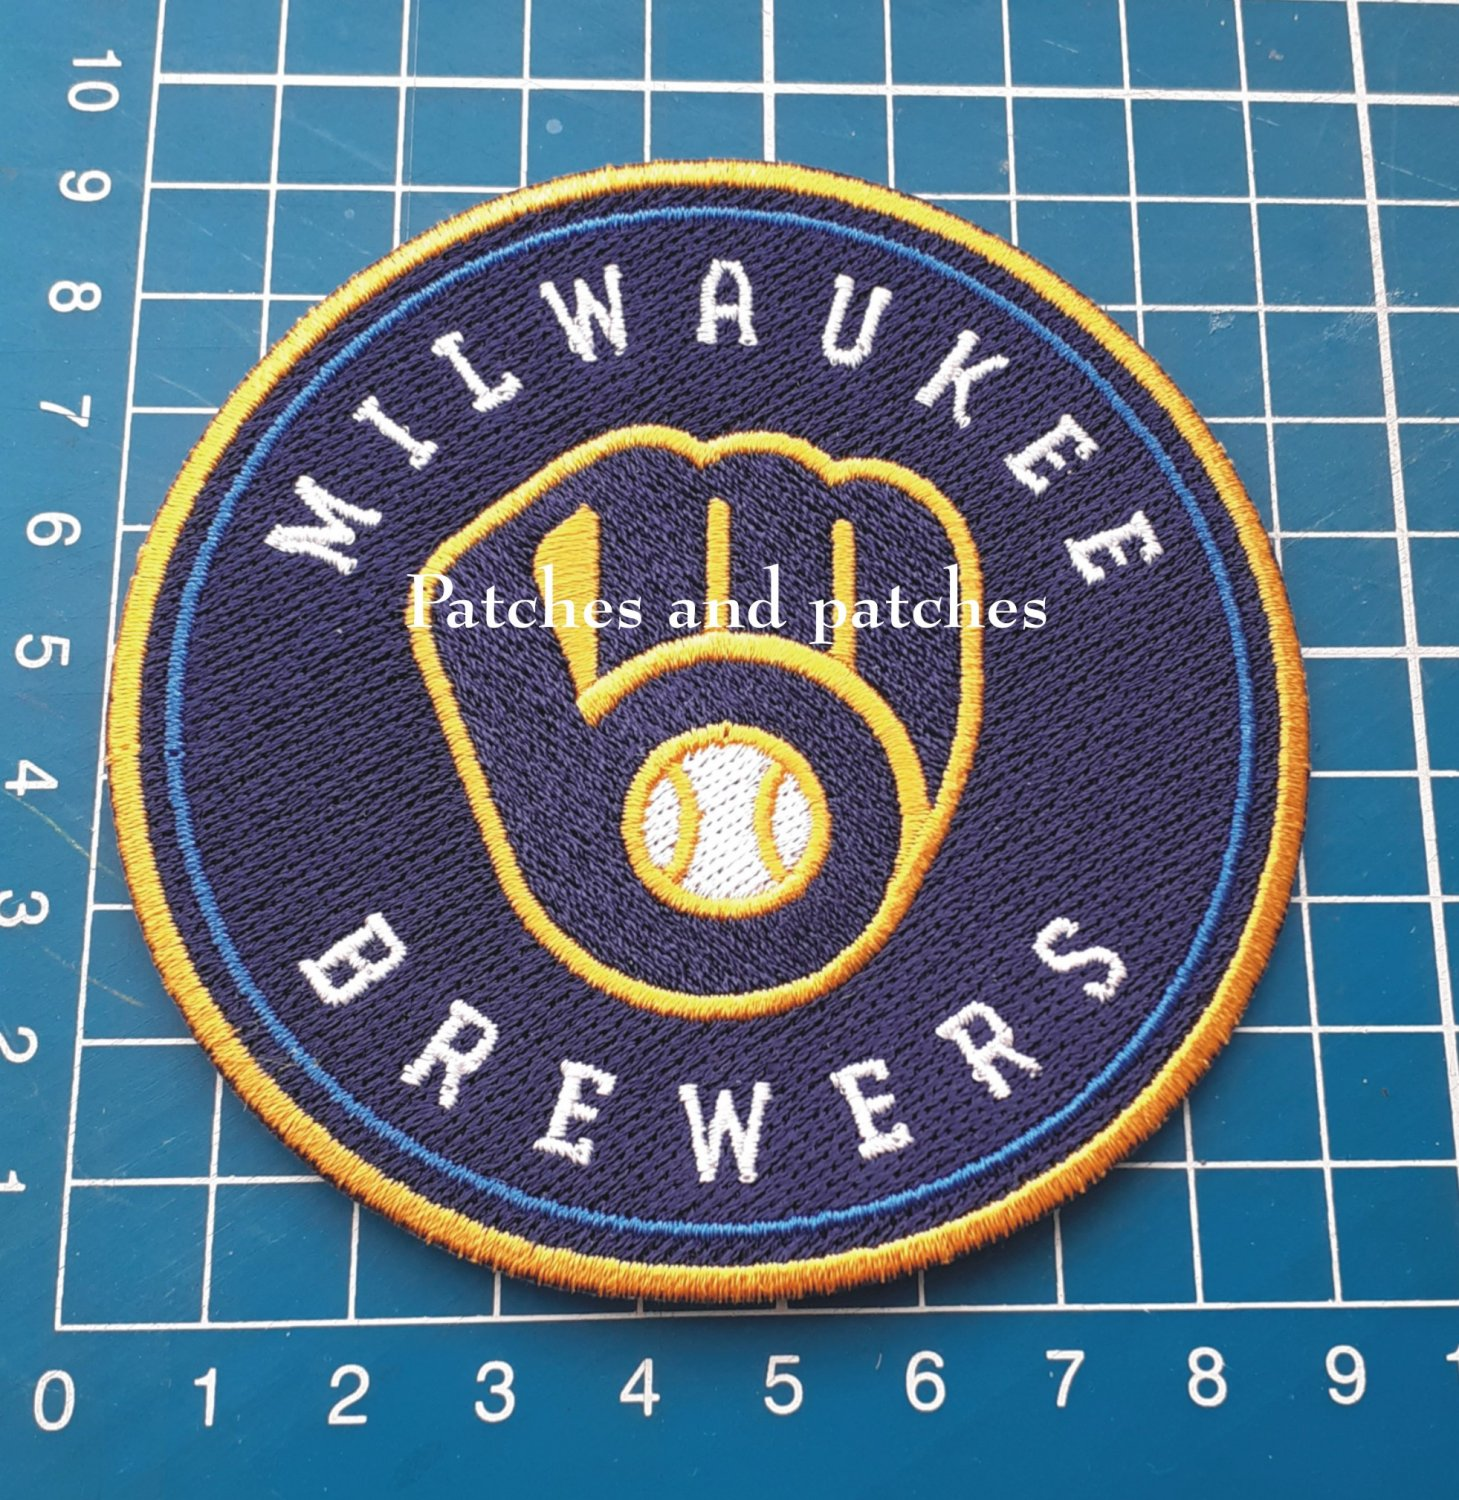 MLB Baseball Milwaukee Brewers Primary logo patch Jersey sew on embroid